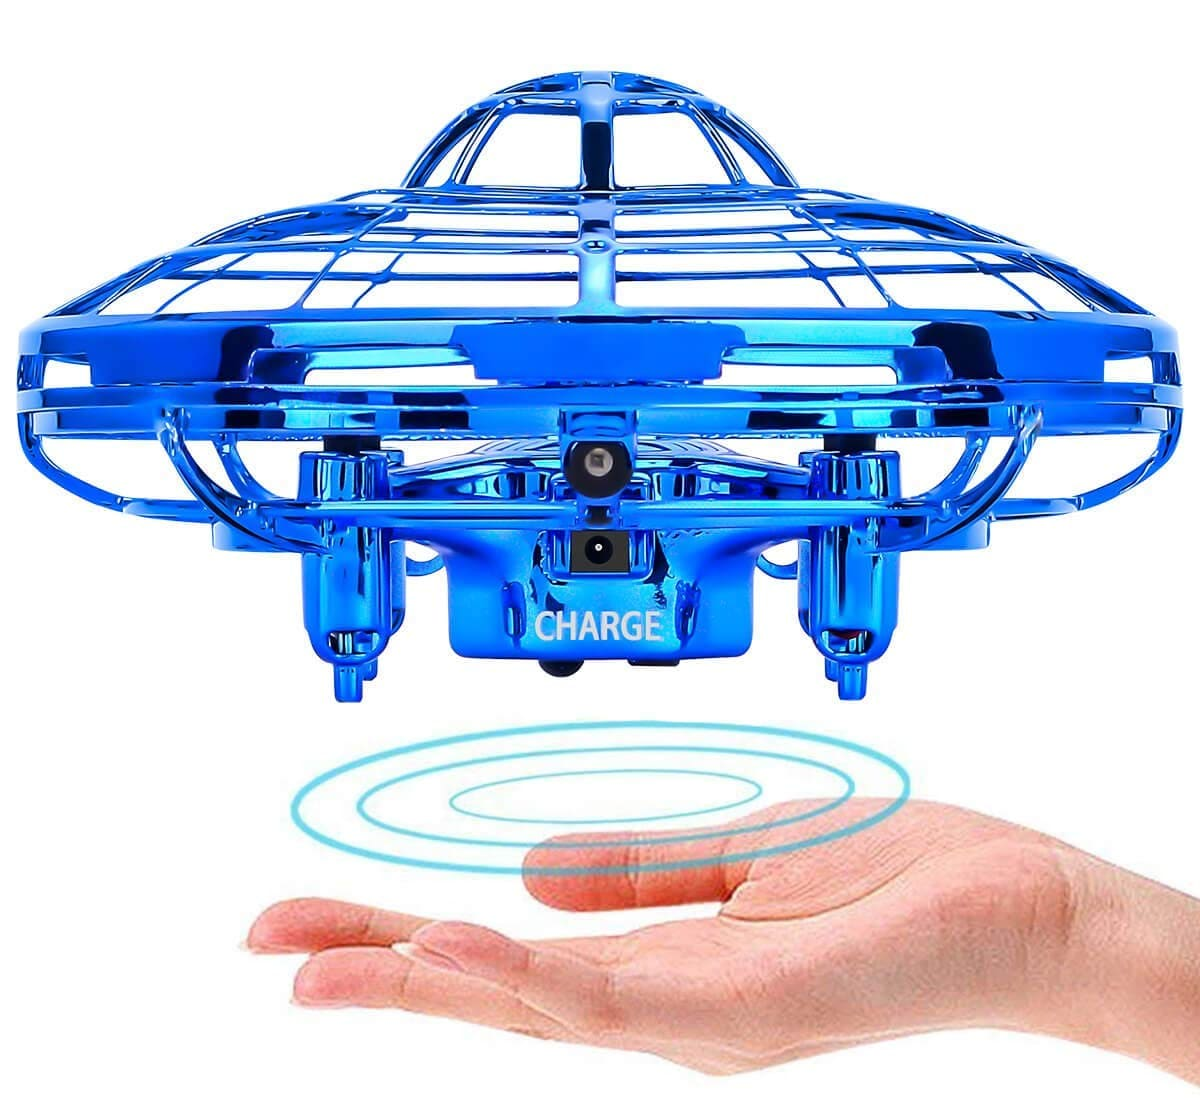 """Mini Quadcopter Drone - """"Force1 Scoot"""" Hands Free Hover Drone Blue - 4"""